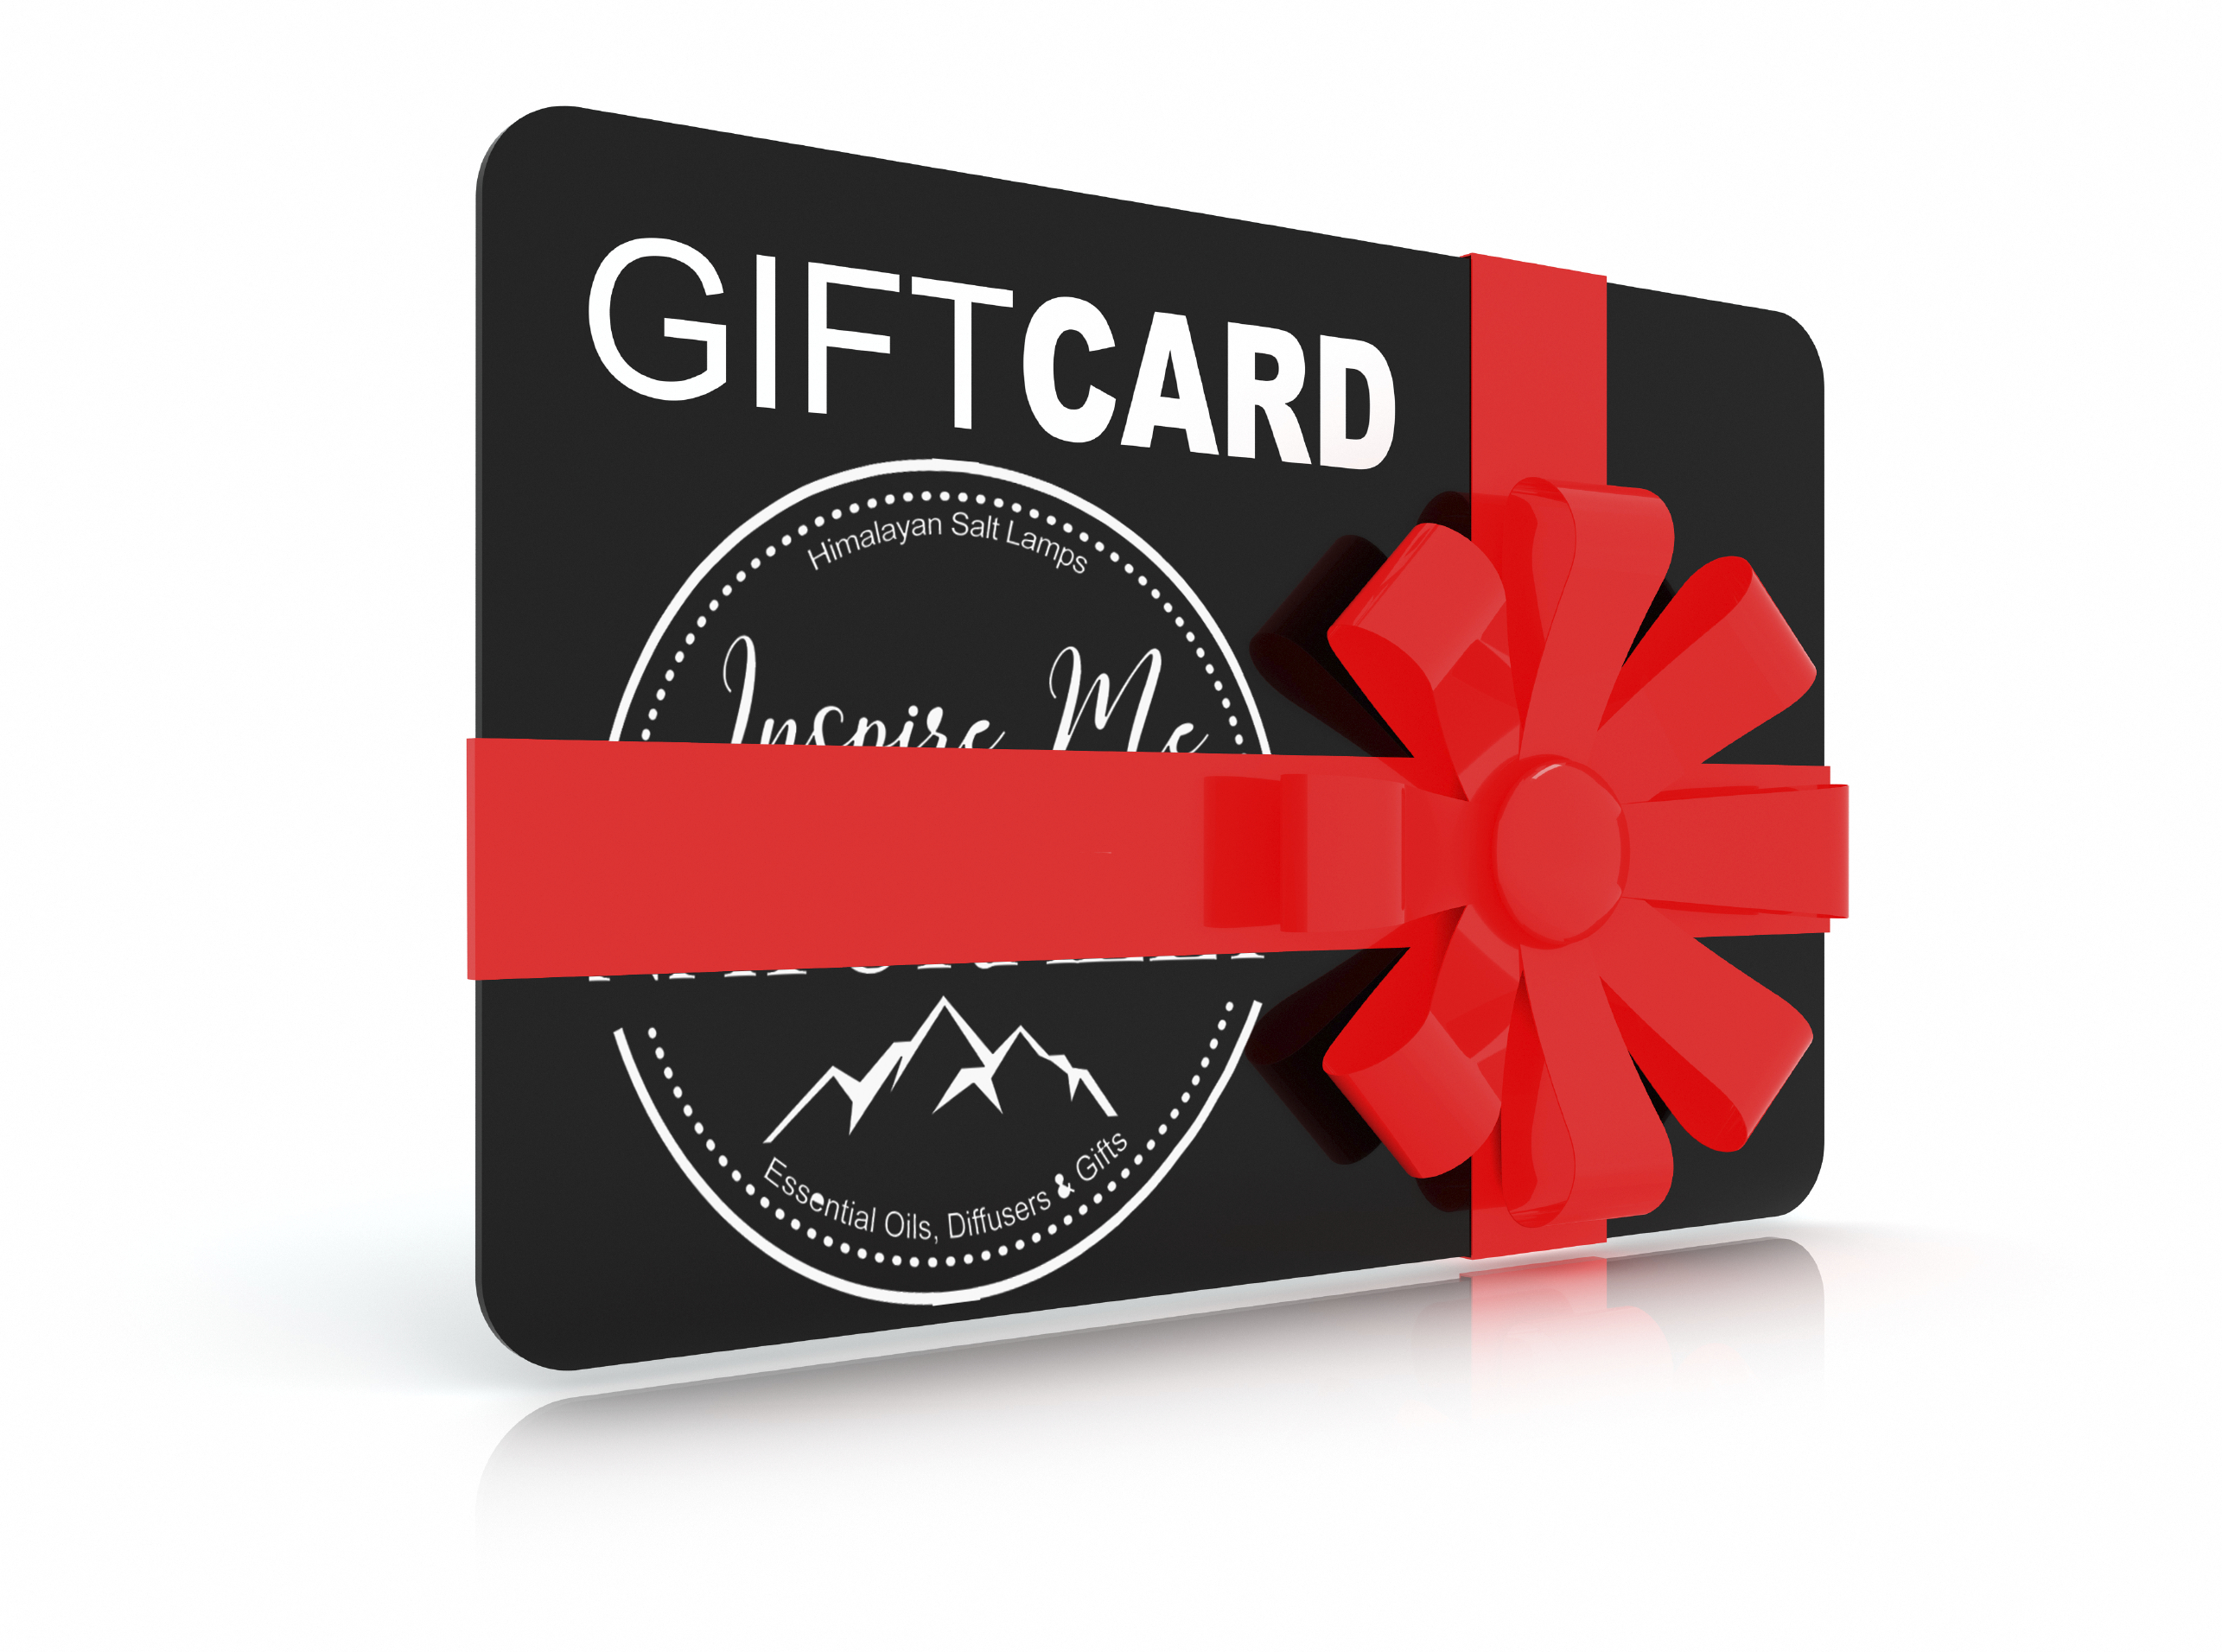 Gift Card Competition giveaway, Giveaway, Gifts